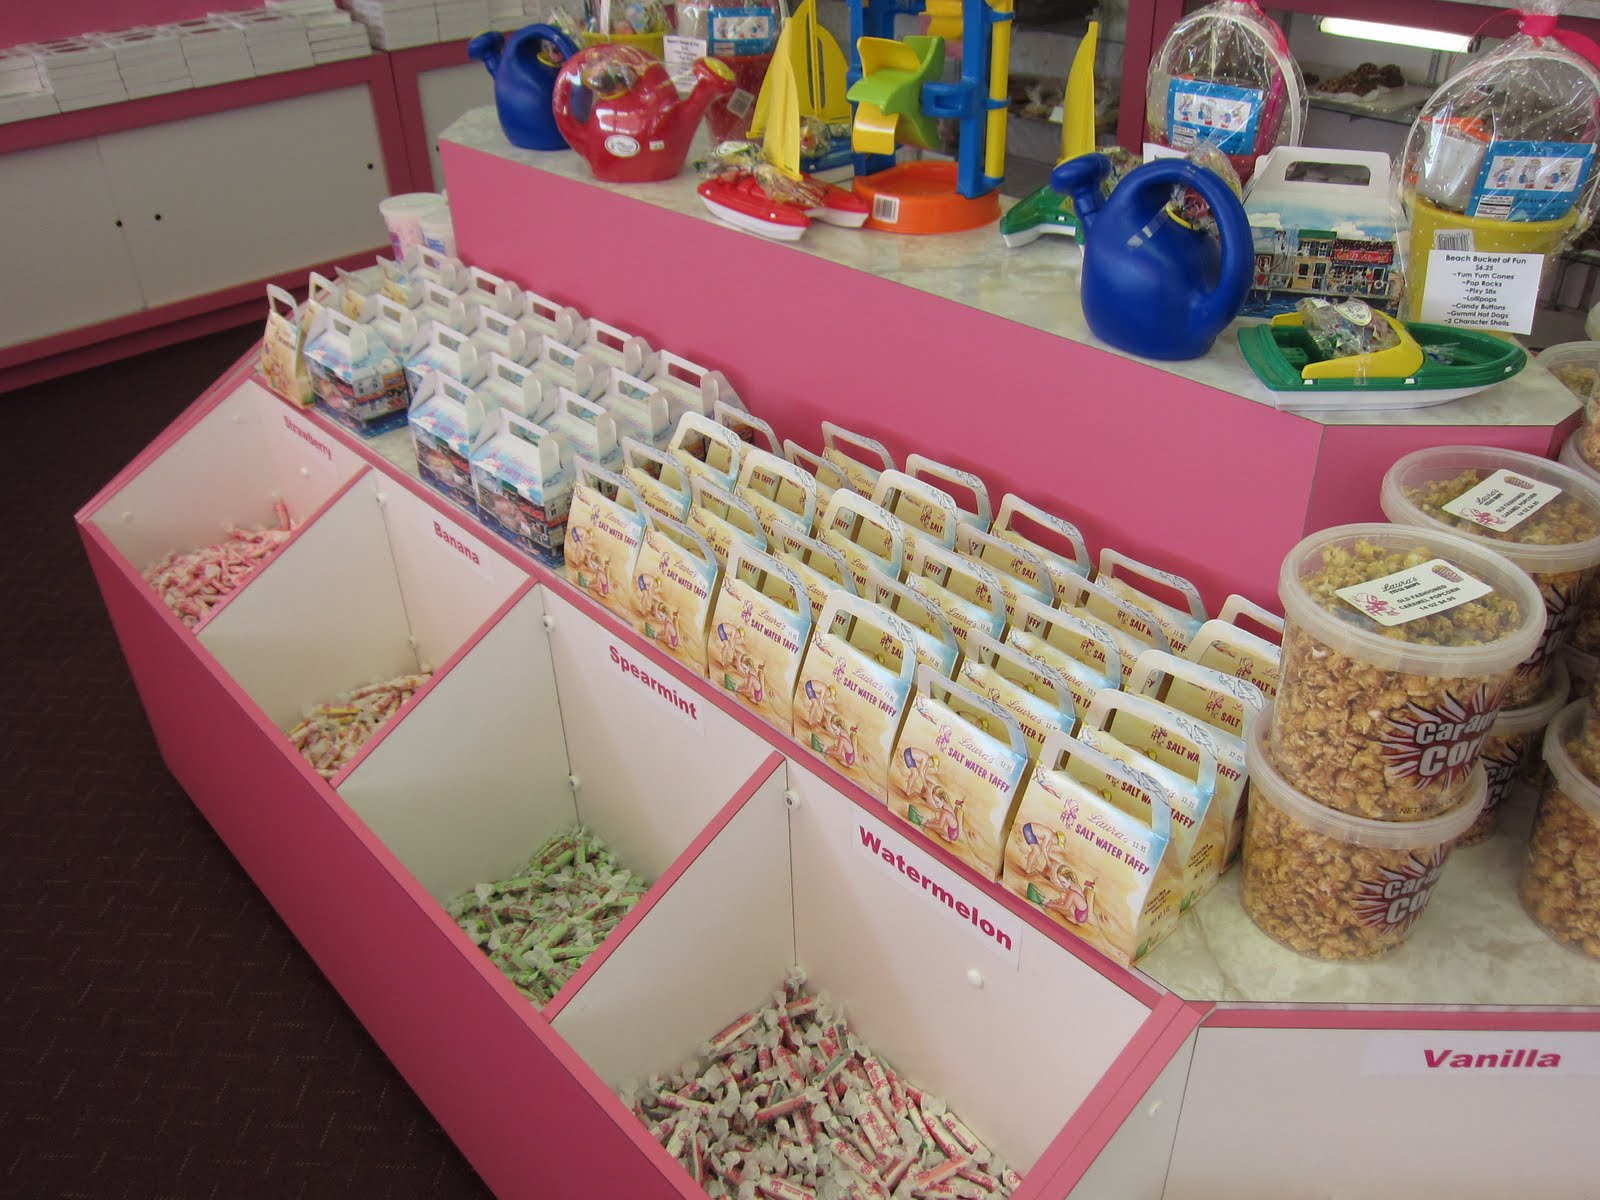 Where Is Darren Now?: Down The Shore: Fudge And Salt Water Taffy